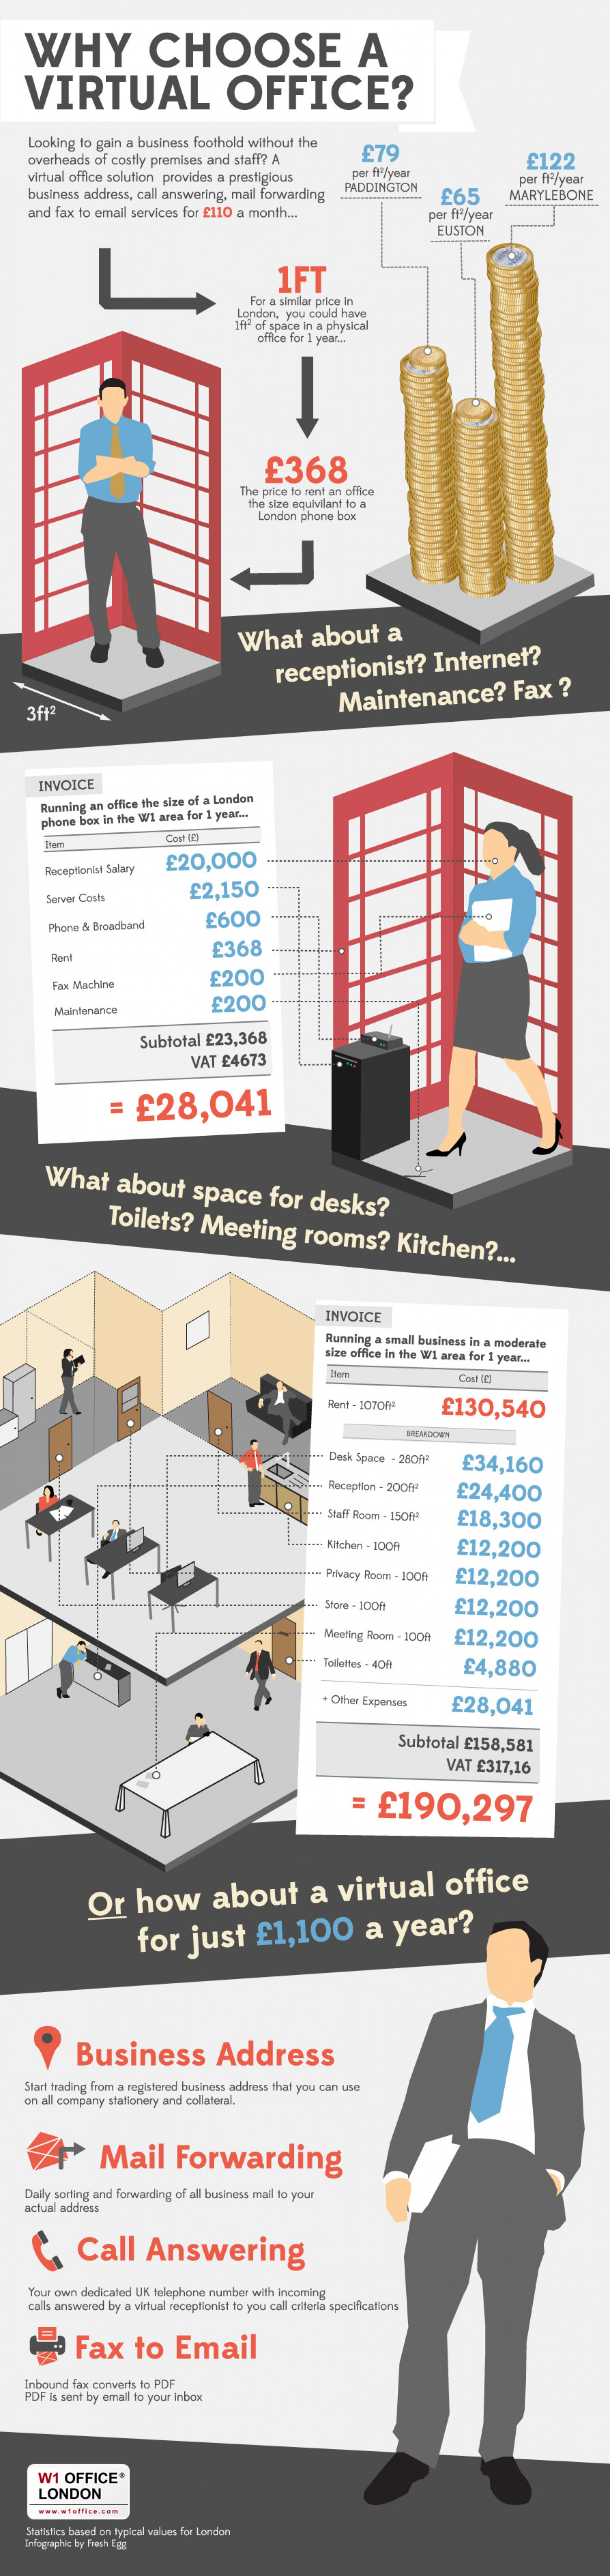 Why Choose a Virtual Office? Infographic